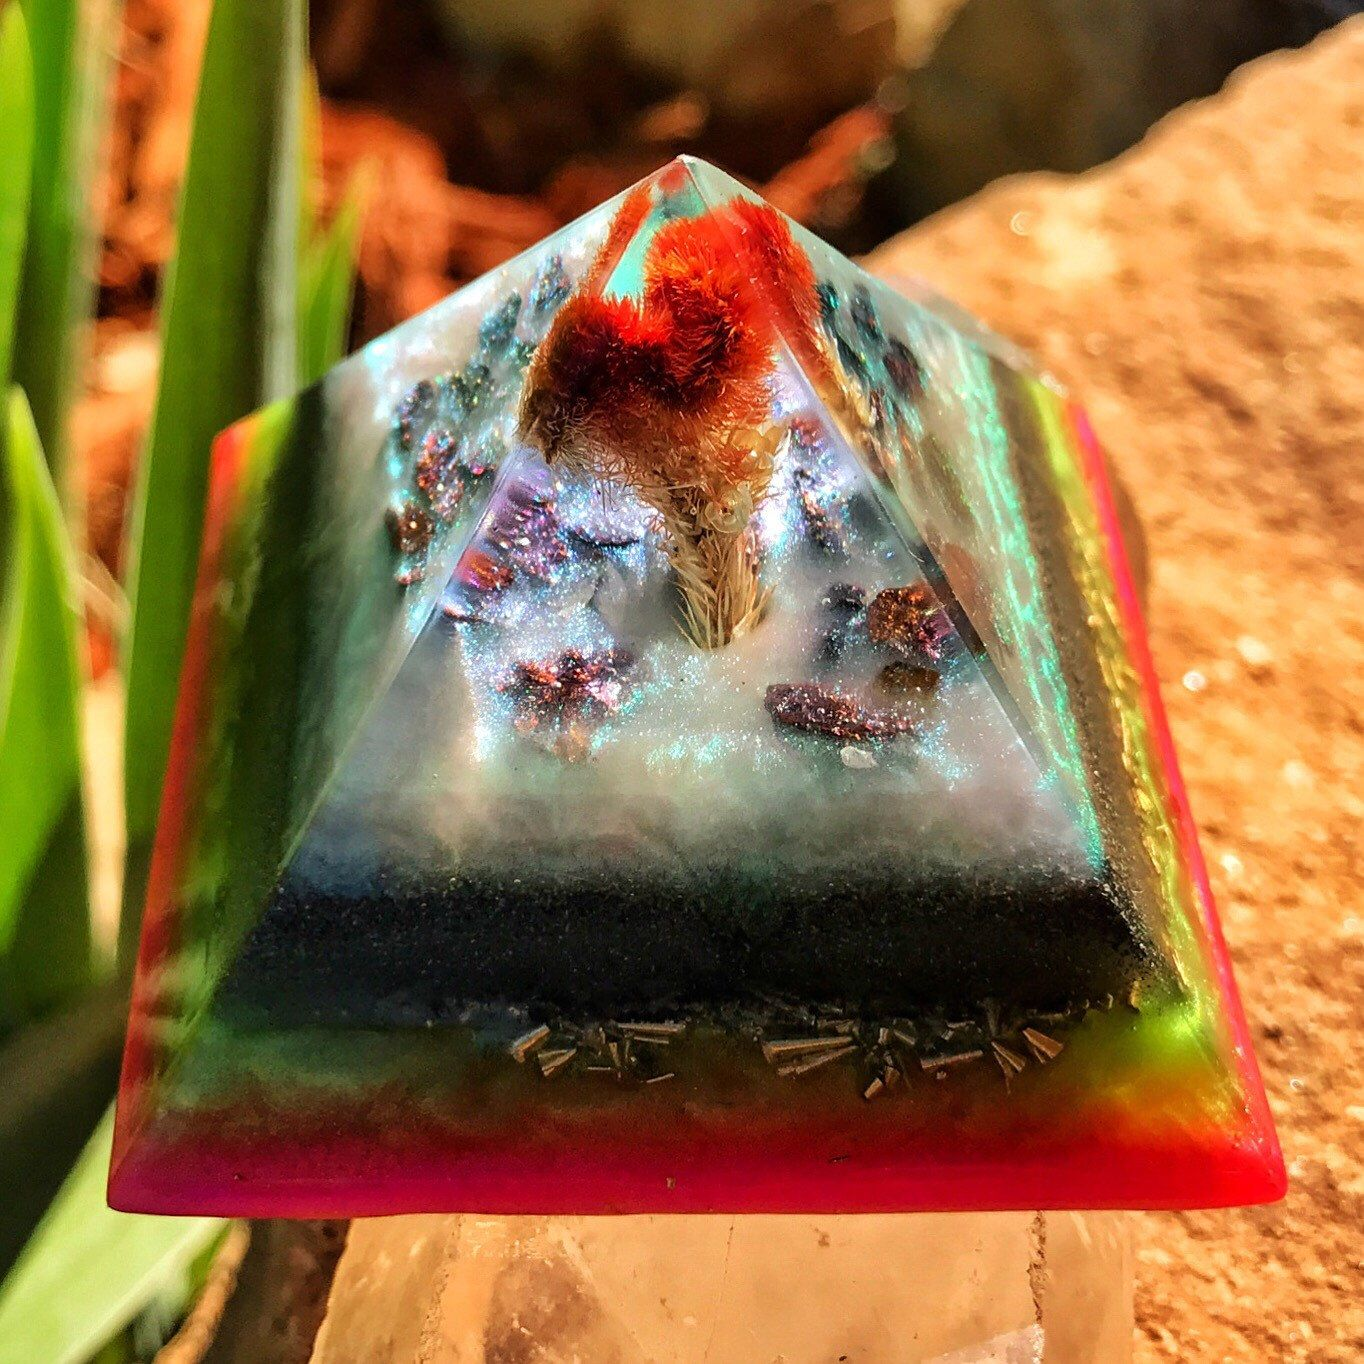 This new pyramid radiates the sweetest energy! I worked with it for the past month, keeping it in my work area, and have been overjoyed with the blessings it seems to be offering. I hope you enjoy it as much as I do 🌈💞🌈